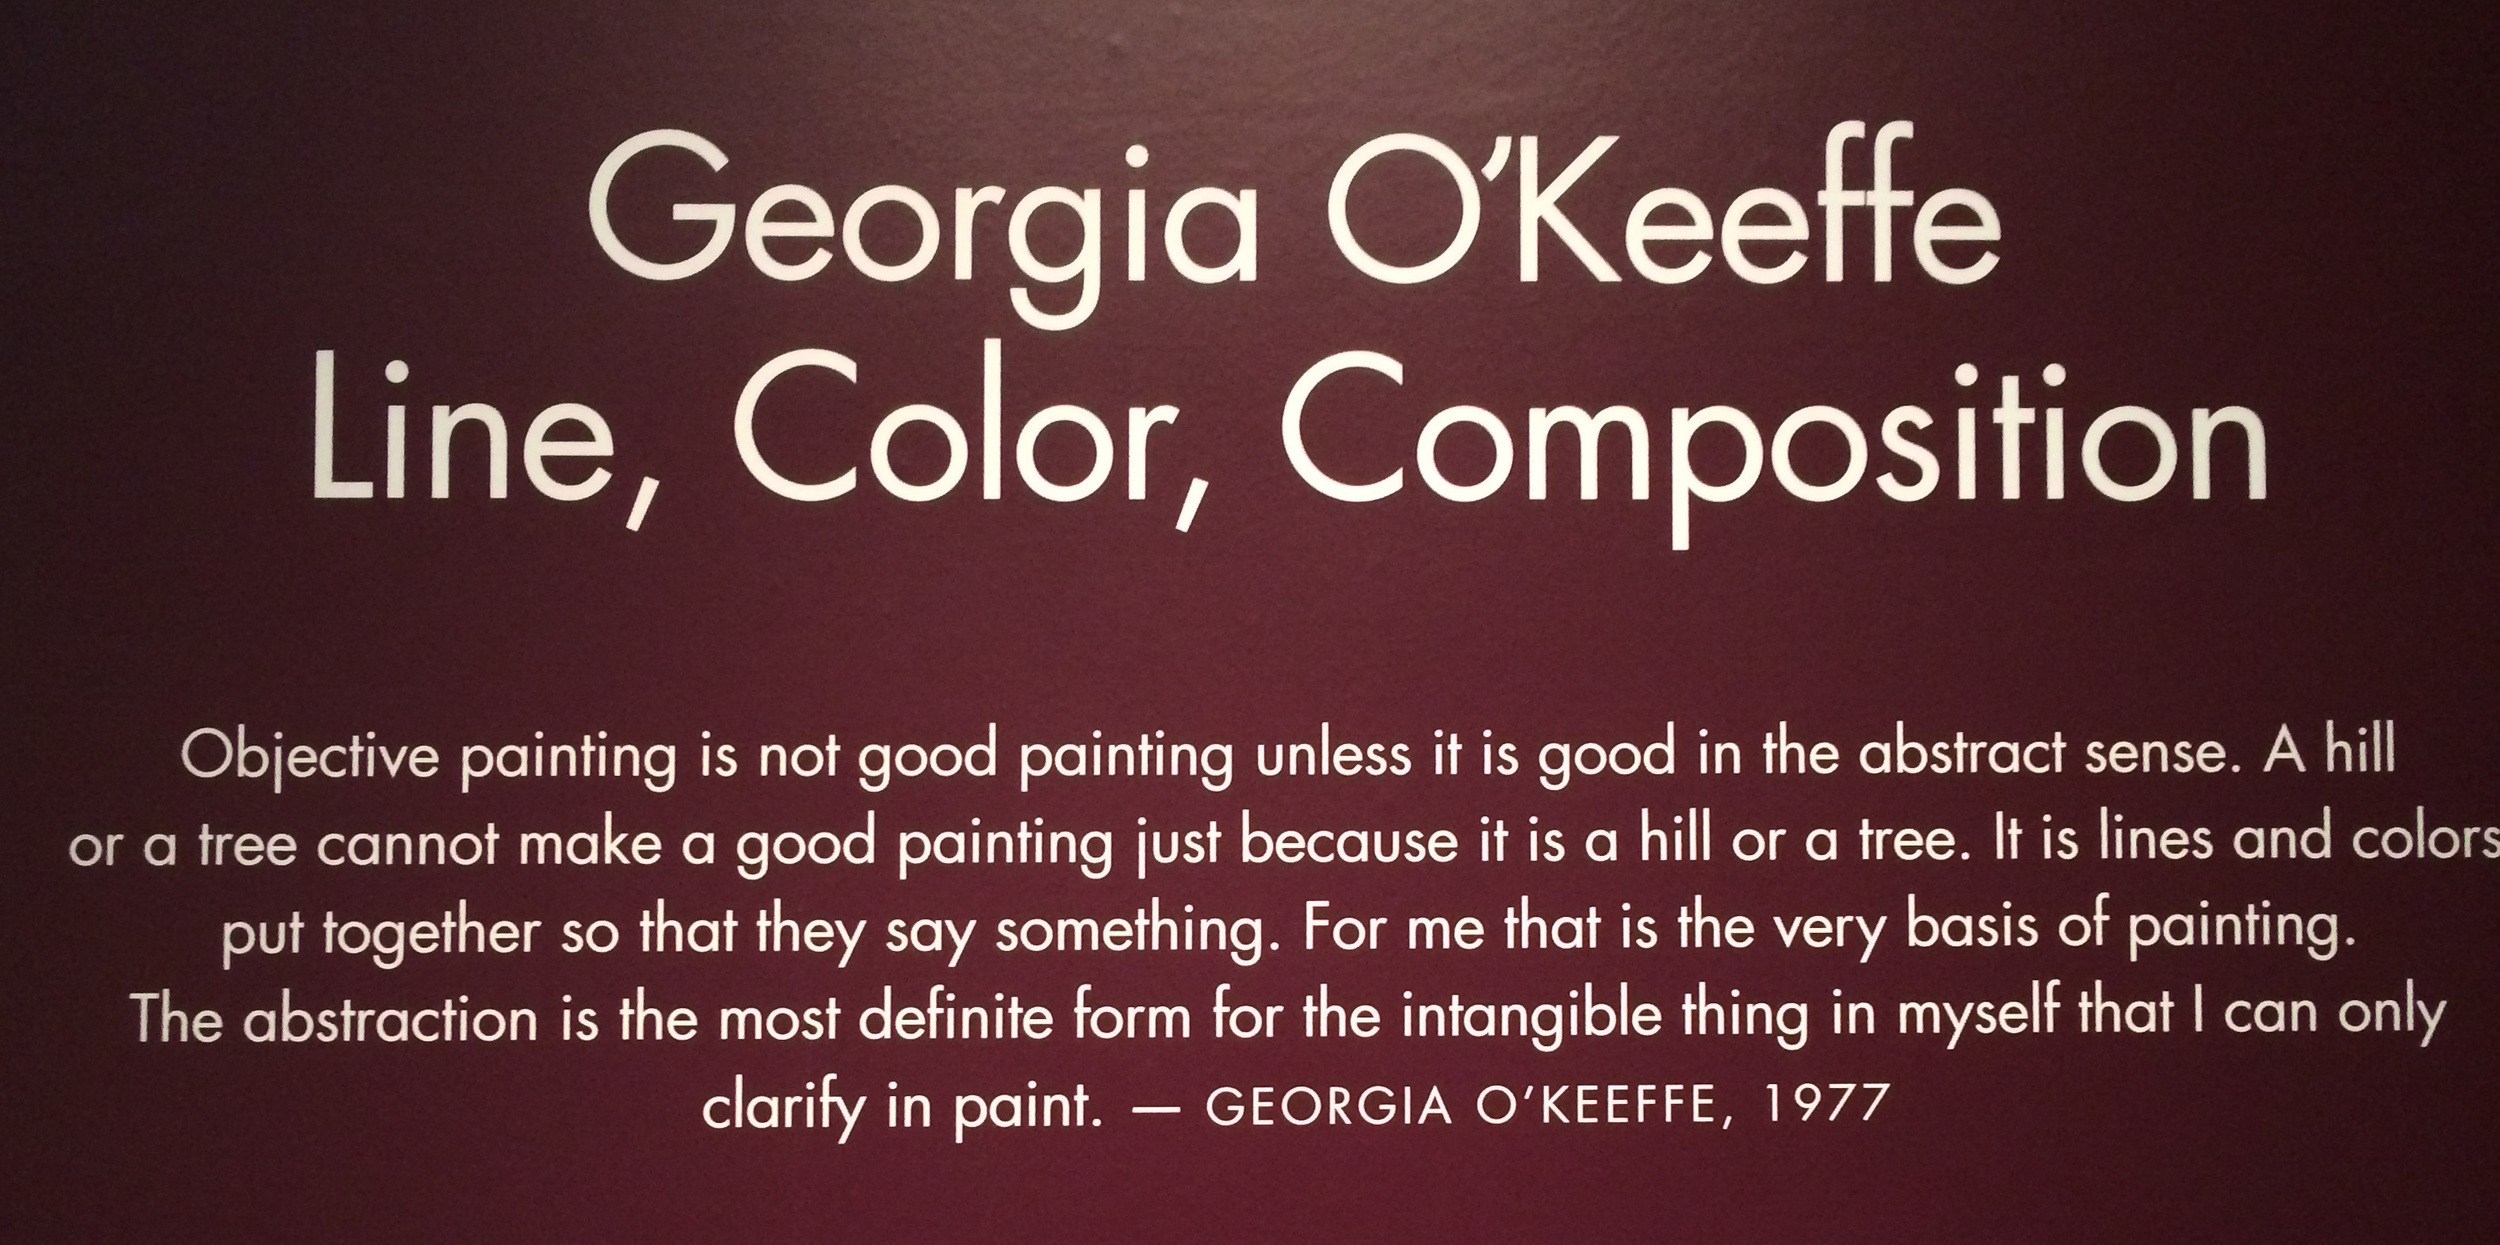 Testify, Sister! You can replace 'painting' with 'photography' and still have a bunch of truthiness.